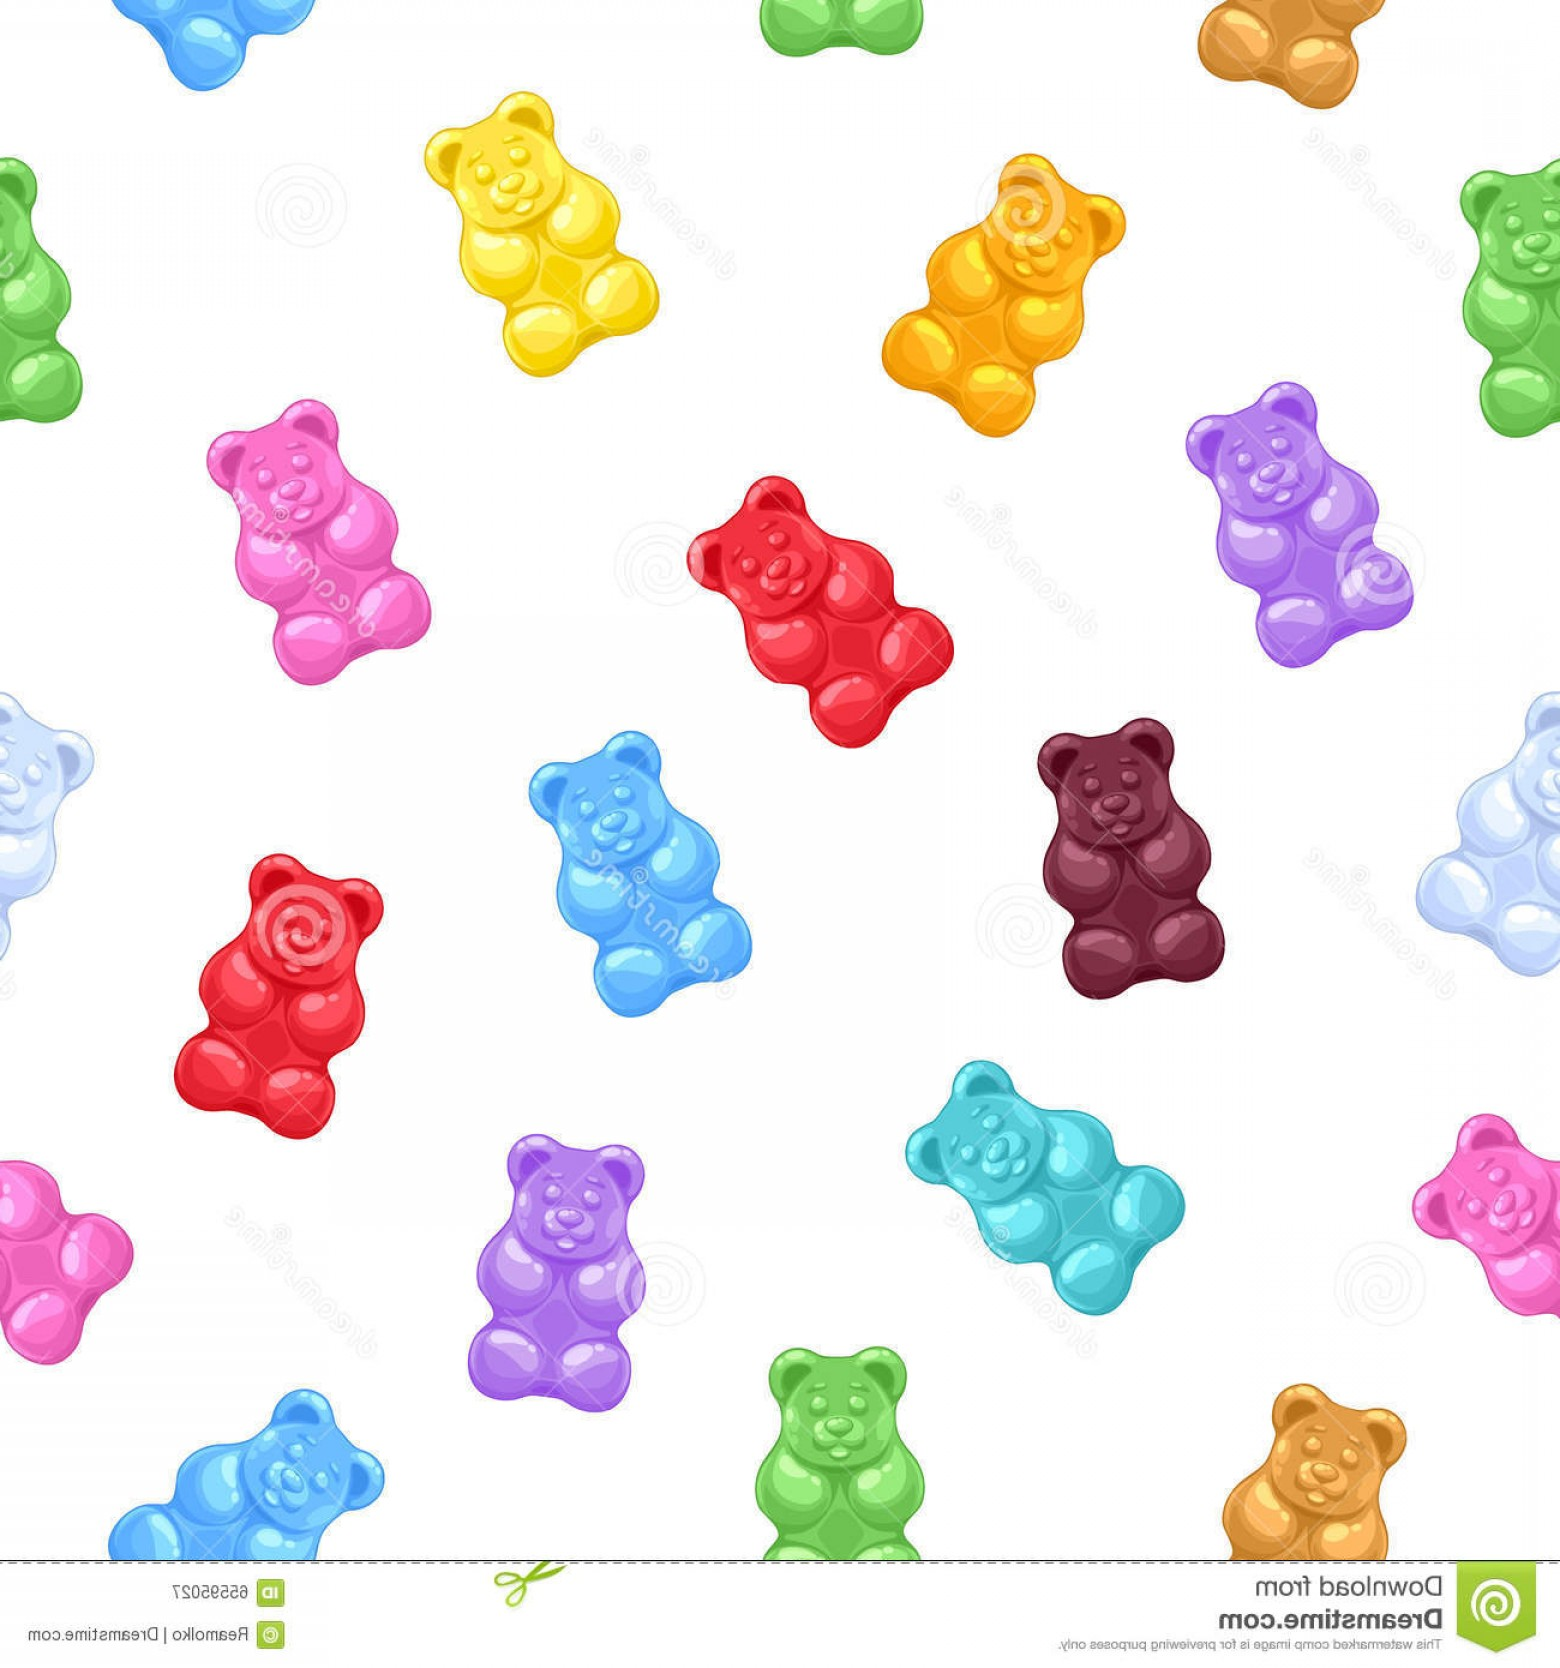 Gummy Bear Vector: Stock Illustration Seamless Gummy Bears Candies Background Colorful Sweets Vector Pattern Image